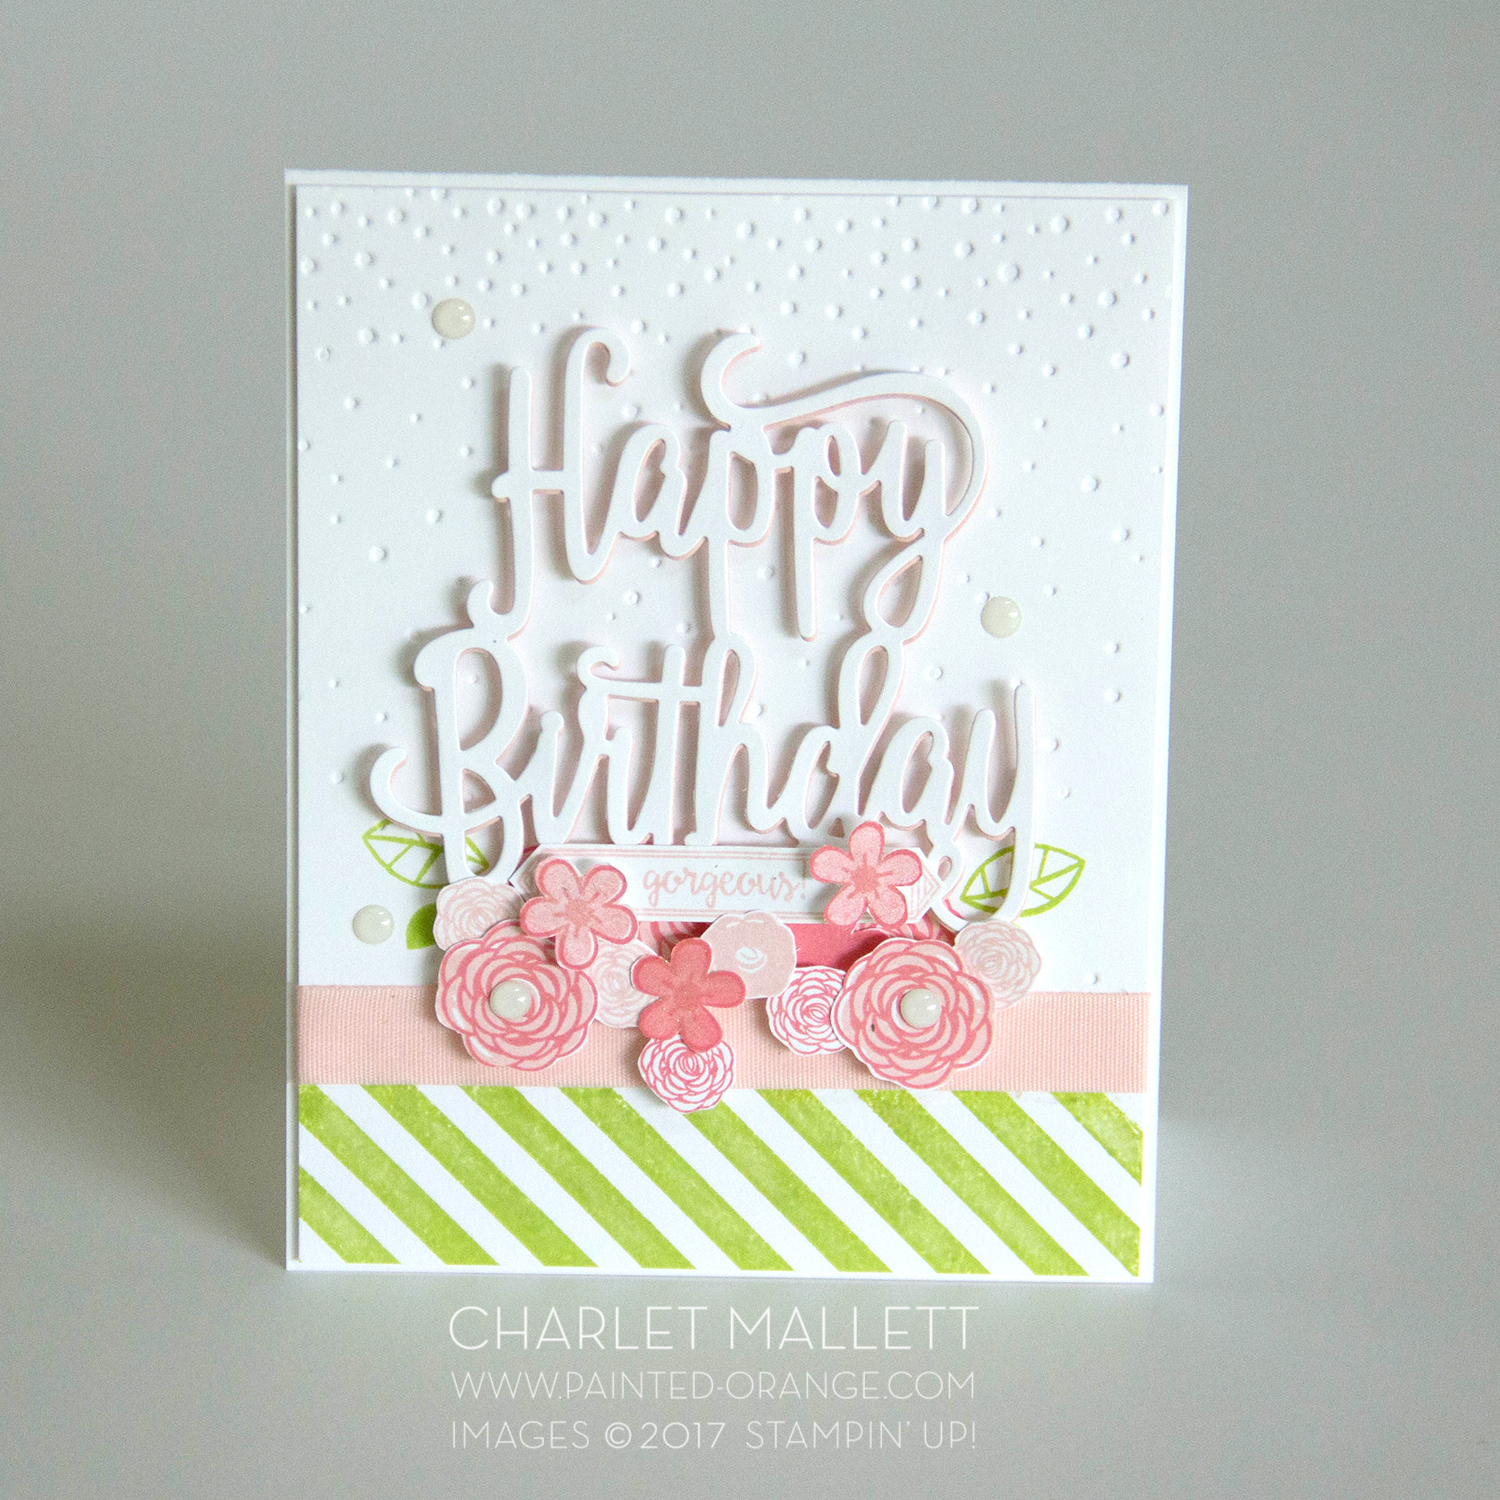 Happy Birthday Gorgeous Stamp set and Happy Birthday Die from Stampin' Up! 2017 Annual catalog. Card made by Charlet Mallett - Painted Orange.